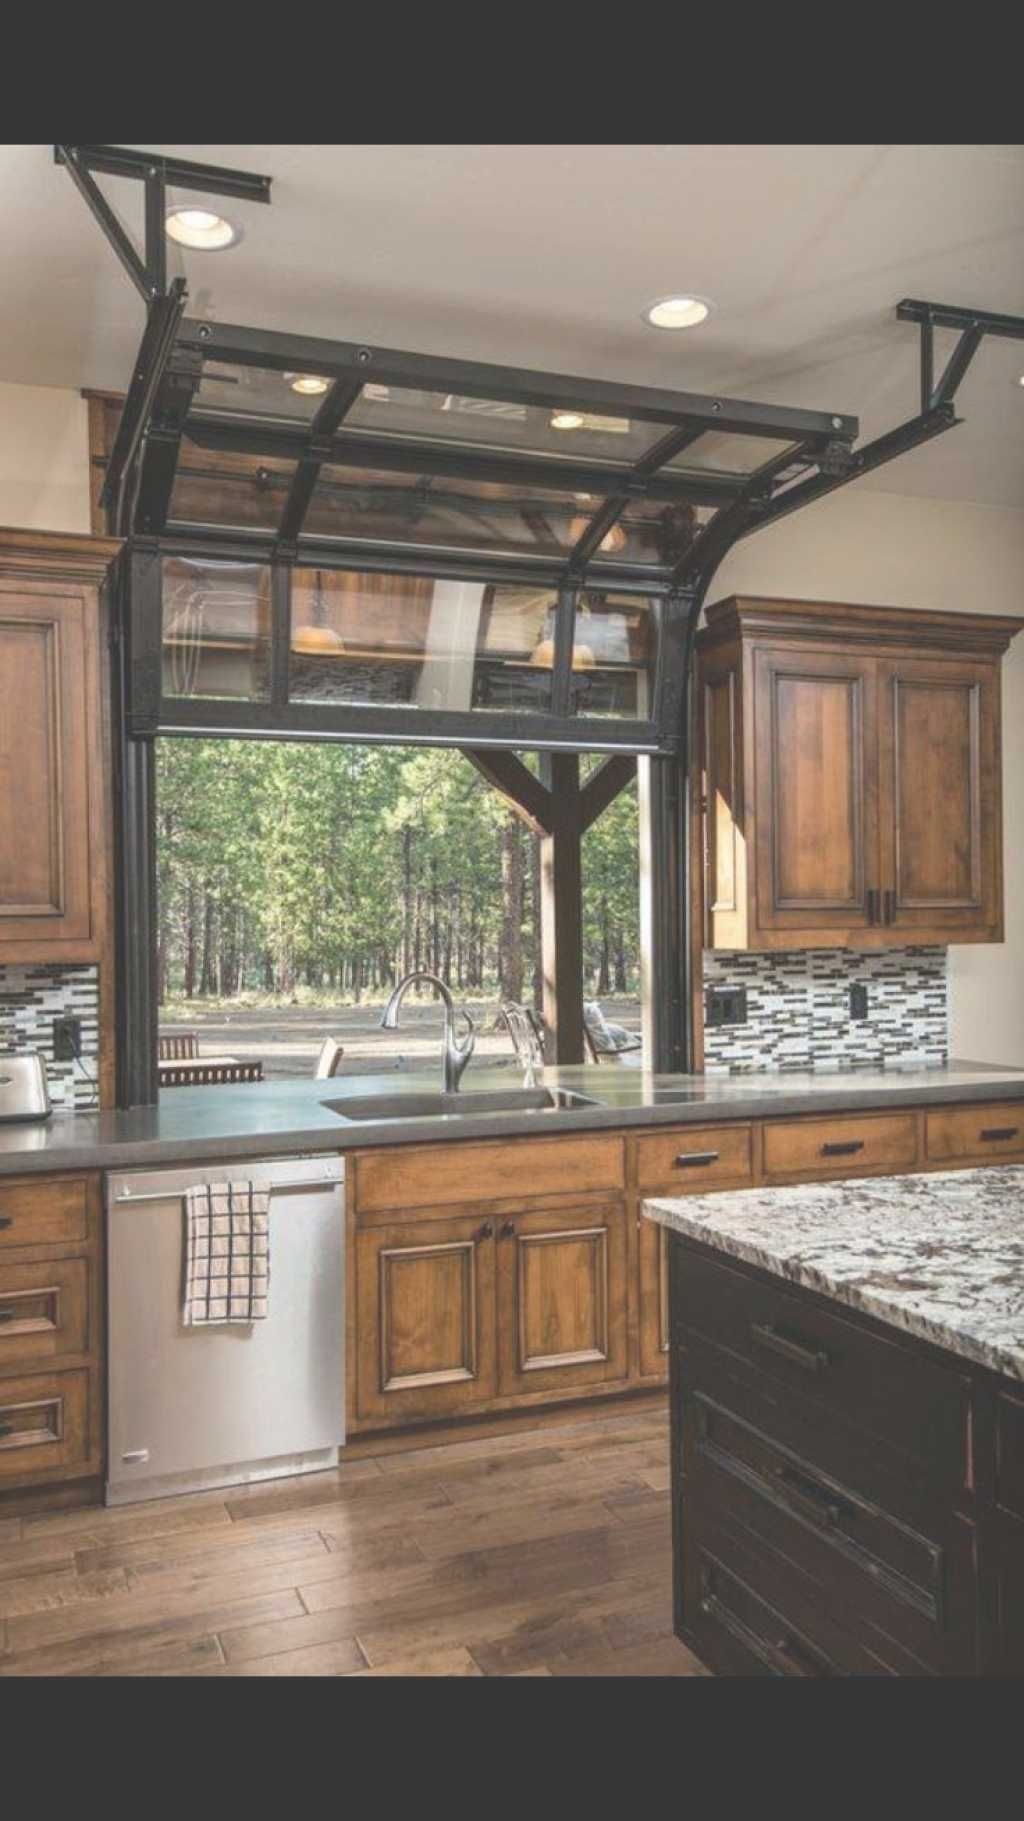 Rustic Lake House Decorating Ideas  The house provides a range of romantic pursuits and scenery